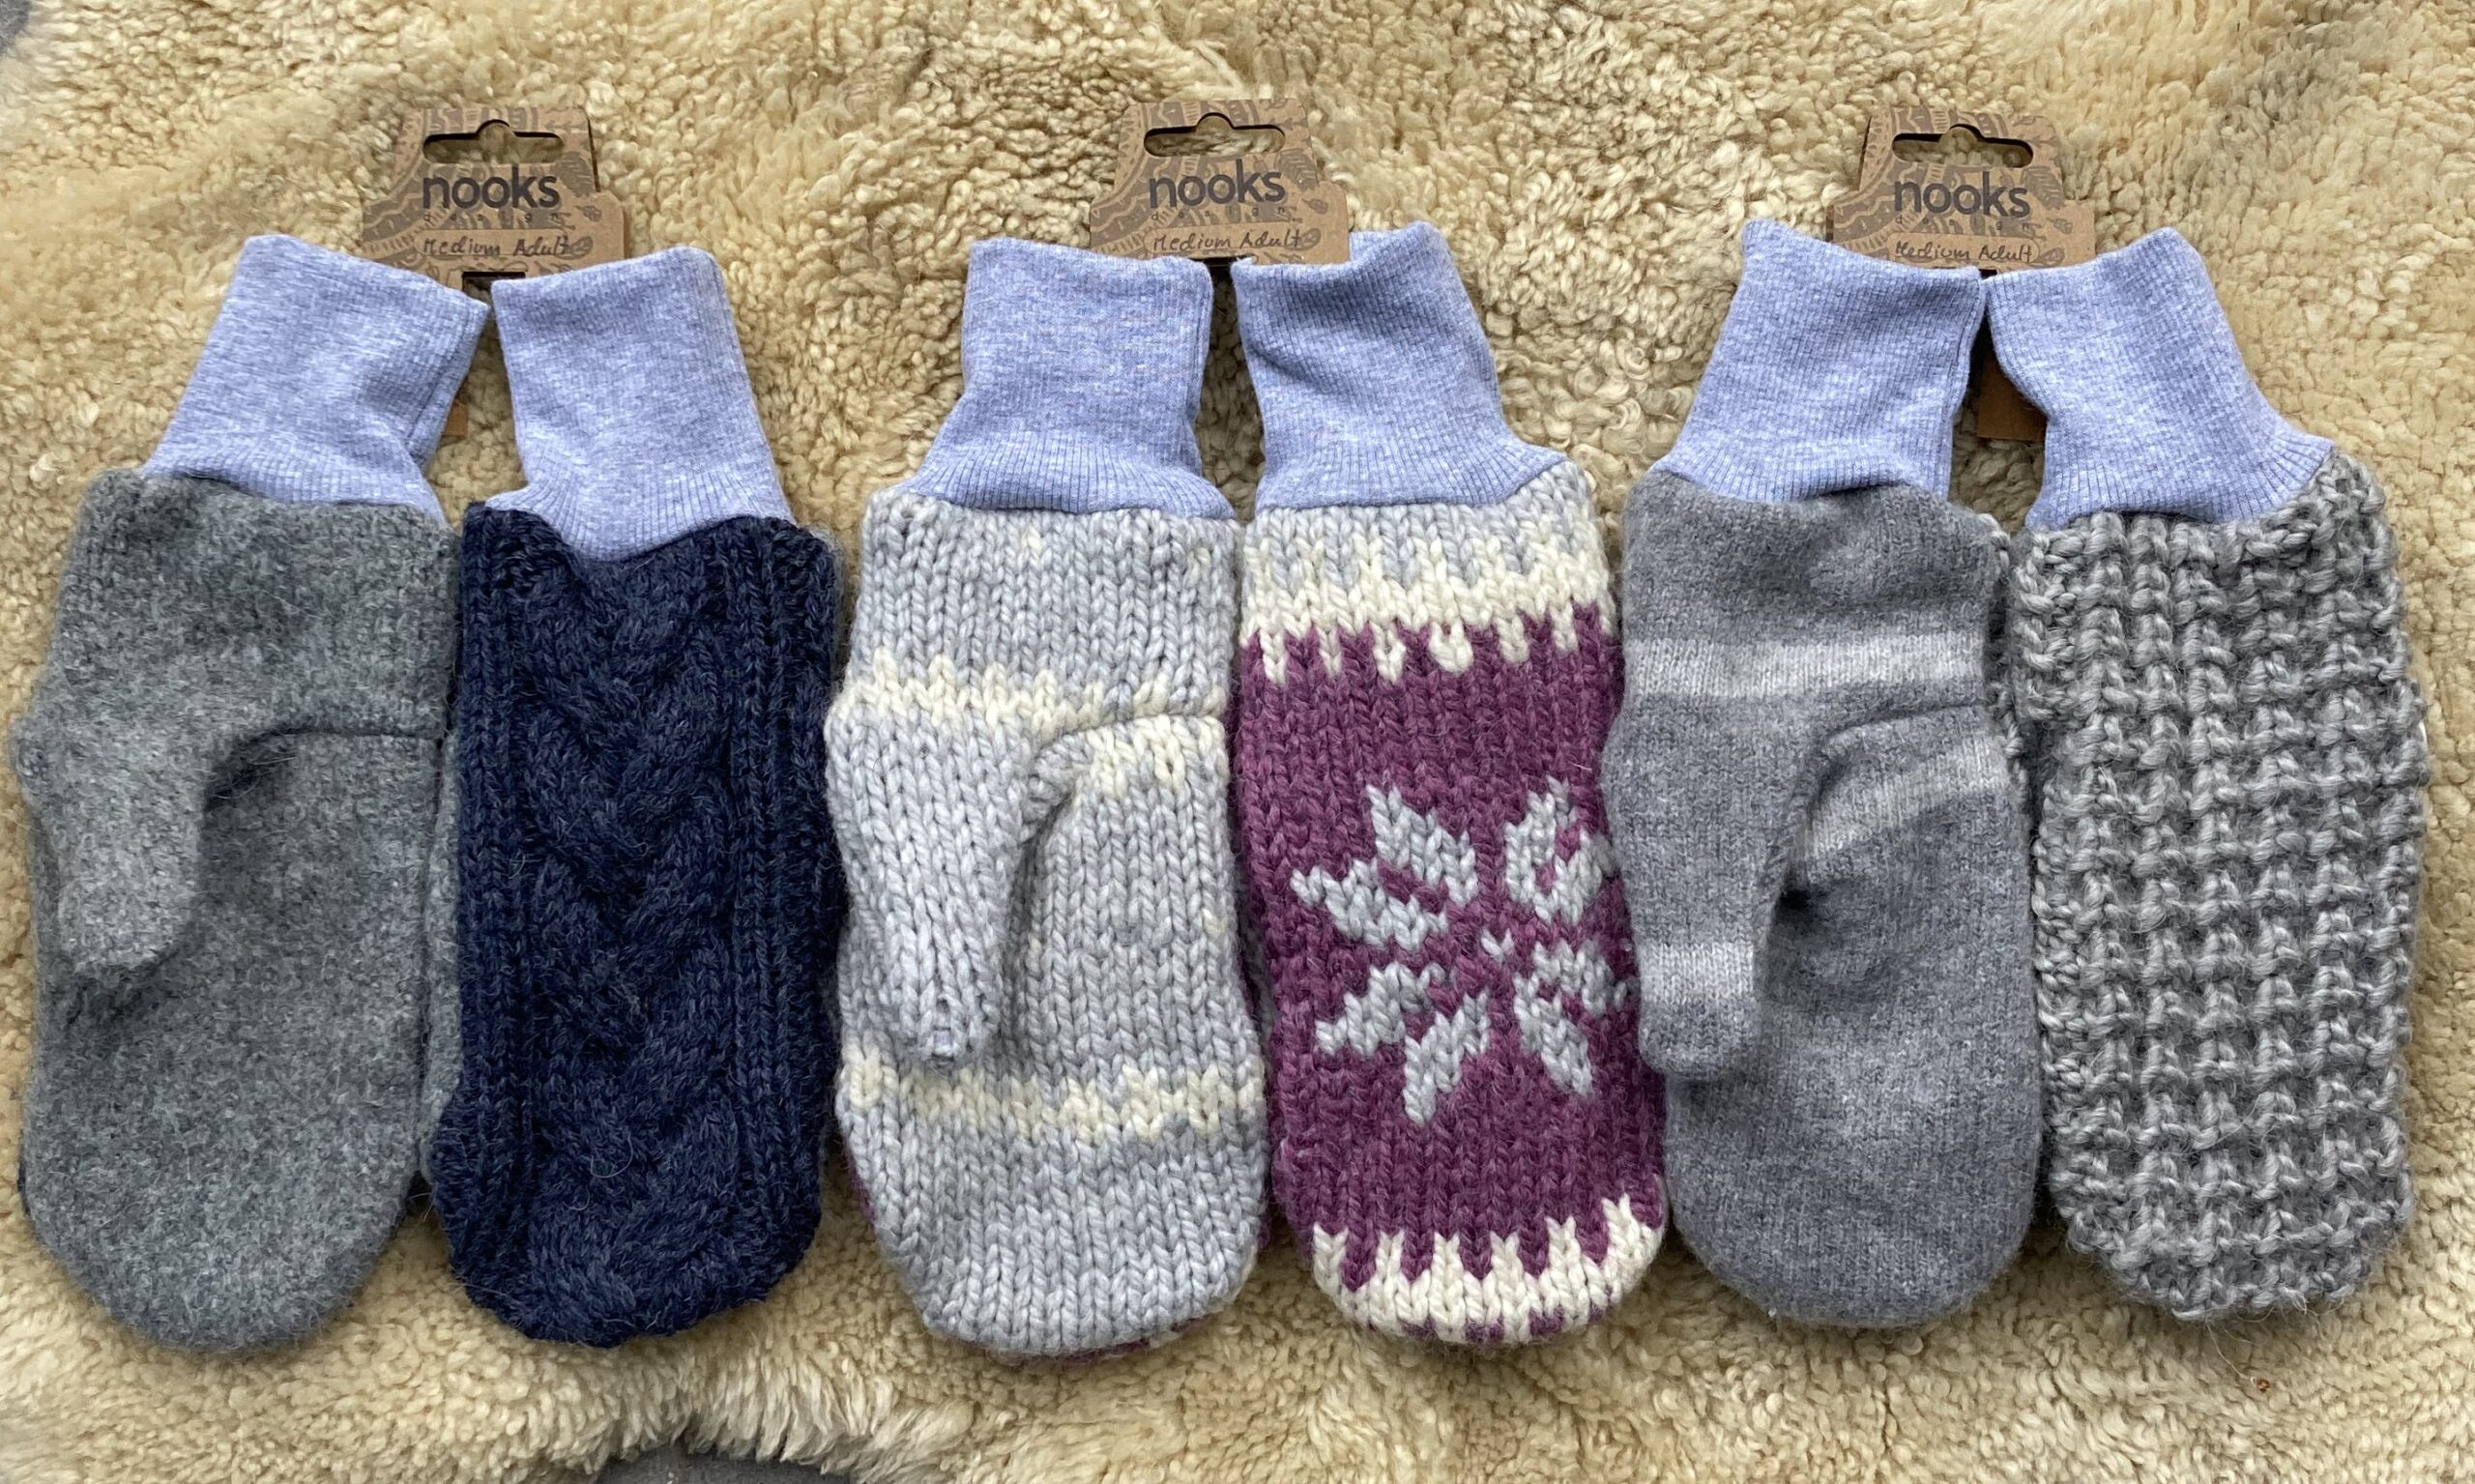 Nooks Upcycled Wool Mitttens - Adult Size